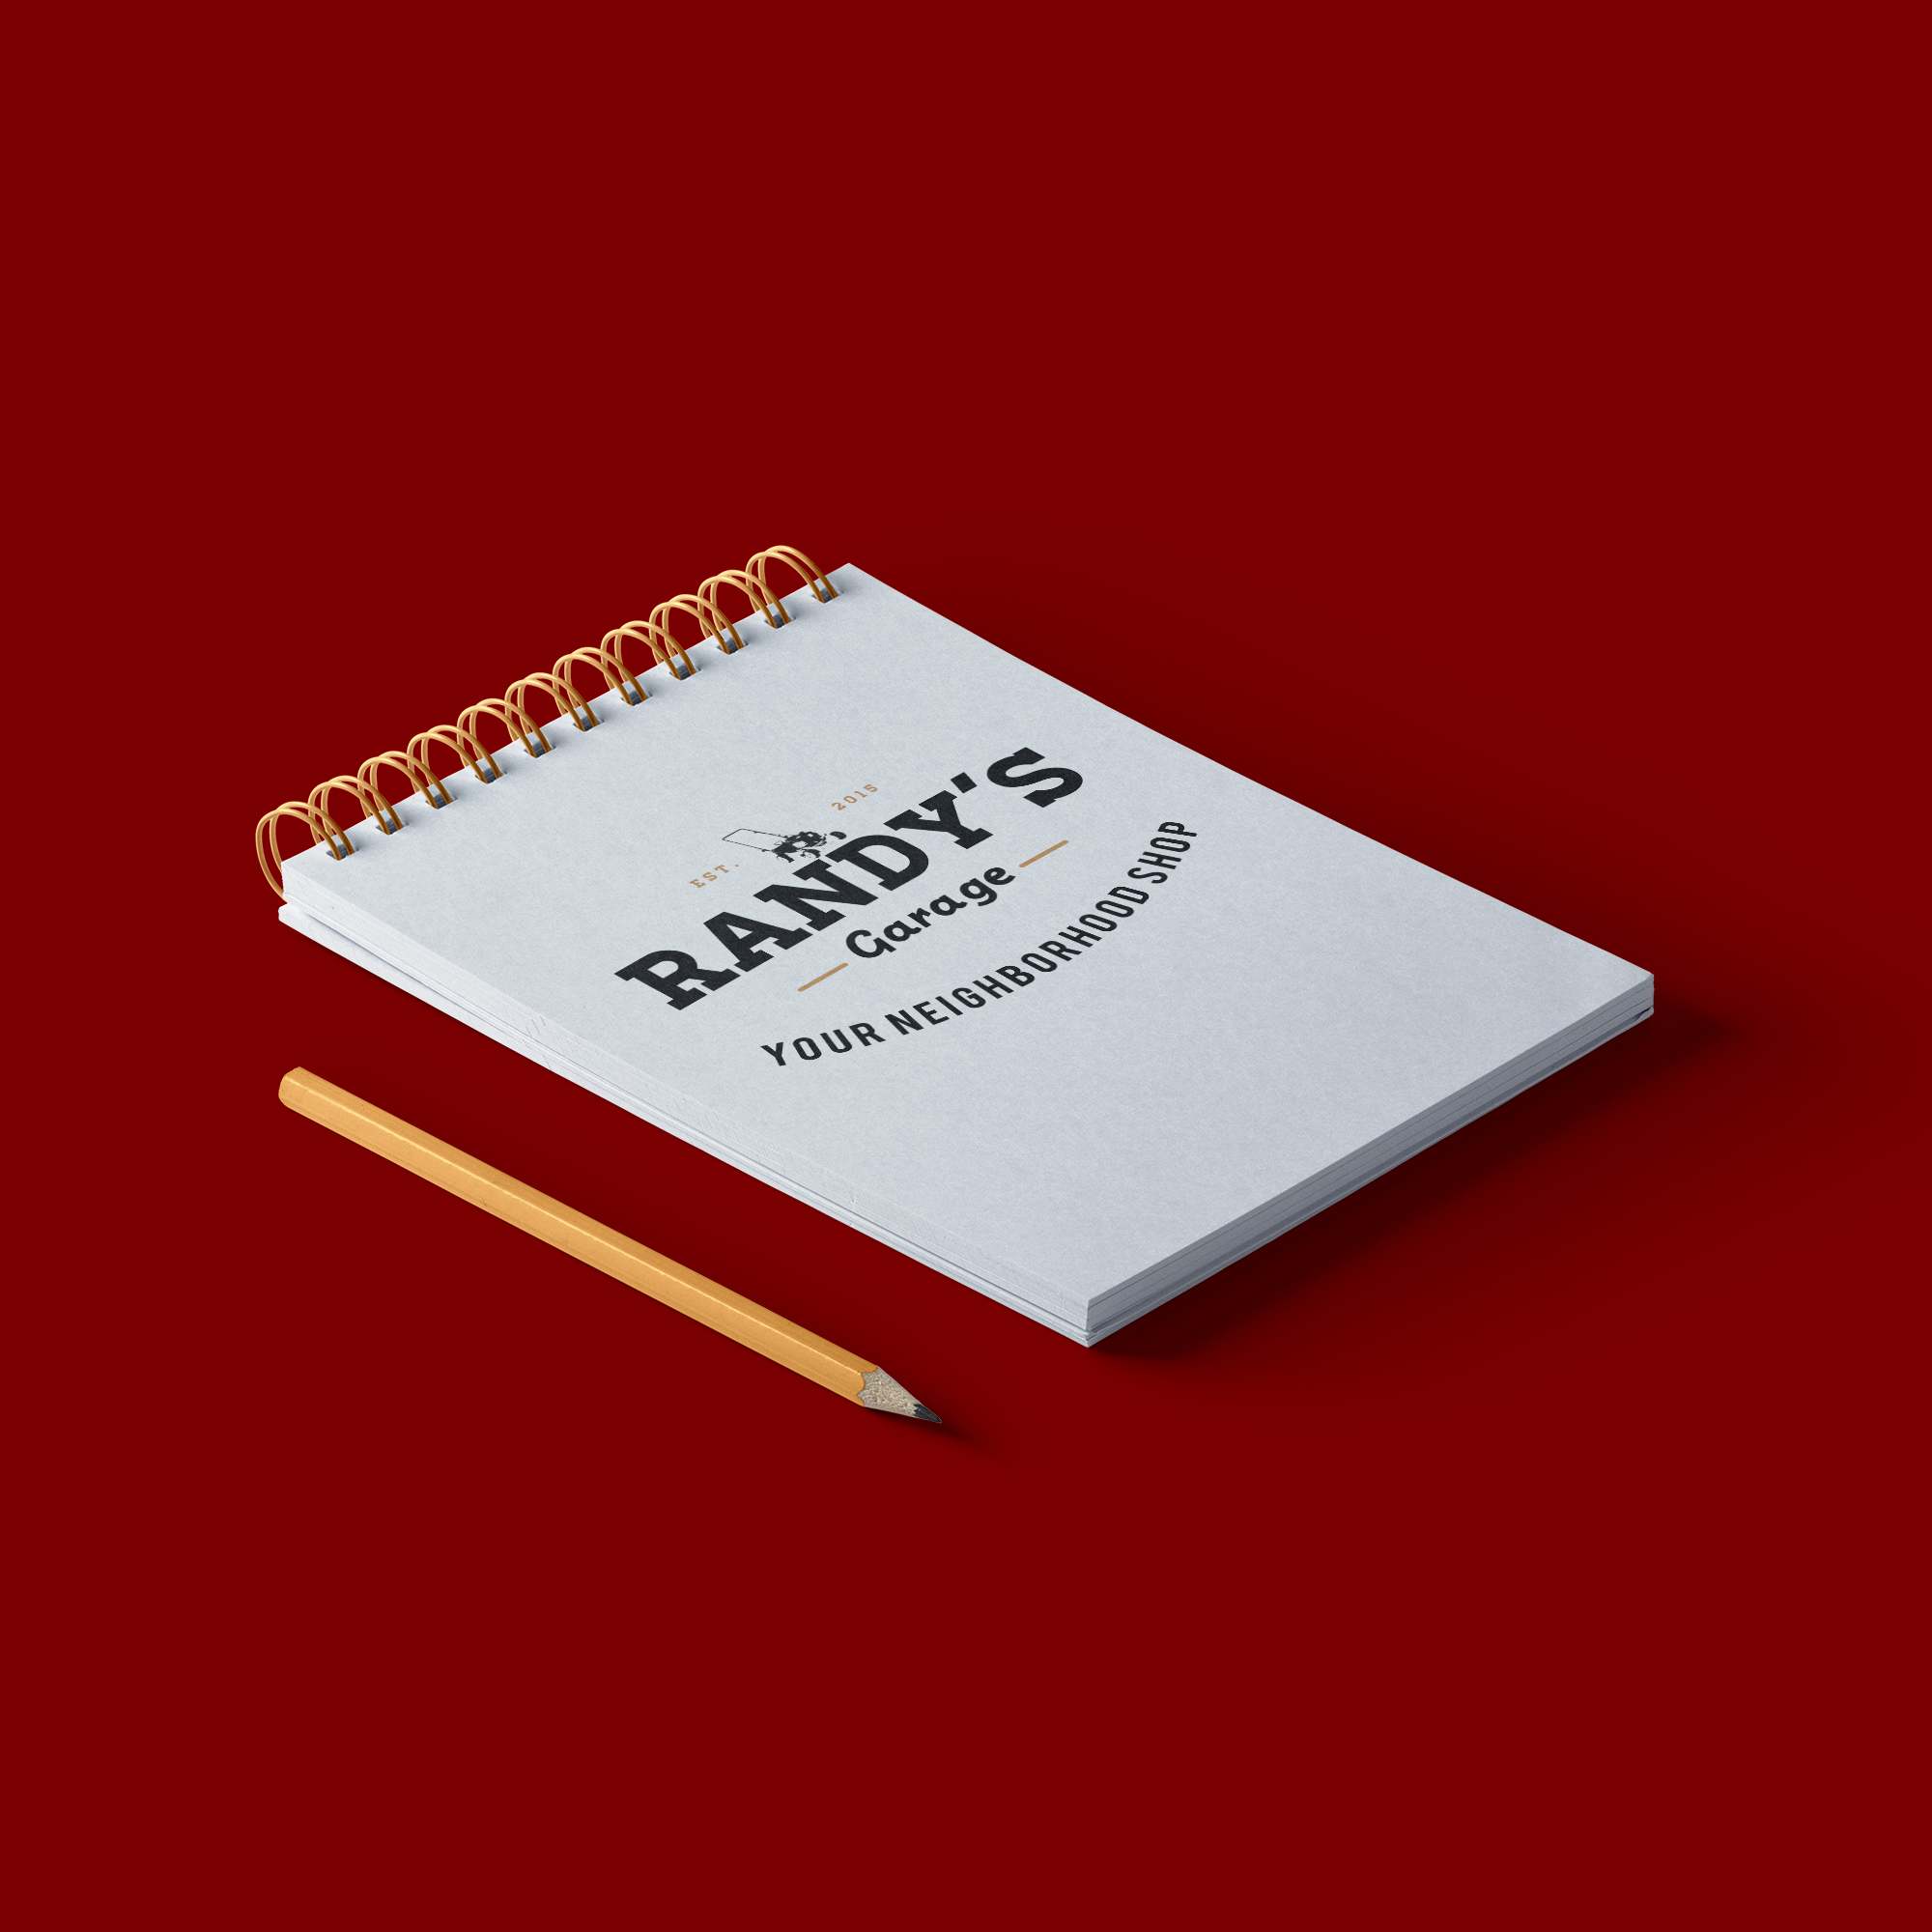 Notebook Mockup of Randy's Garage logo design by Geena Matuson @geenamatuson #thegirlmirage